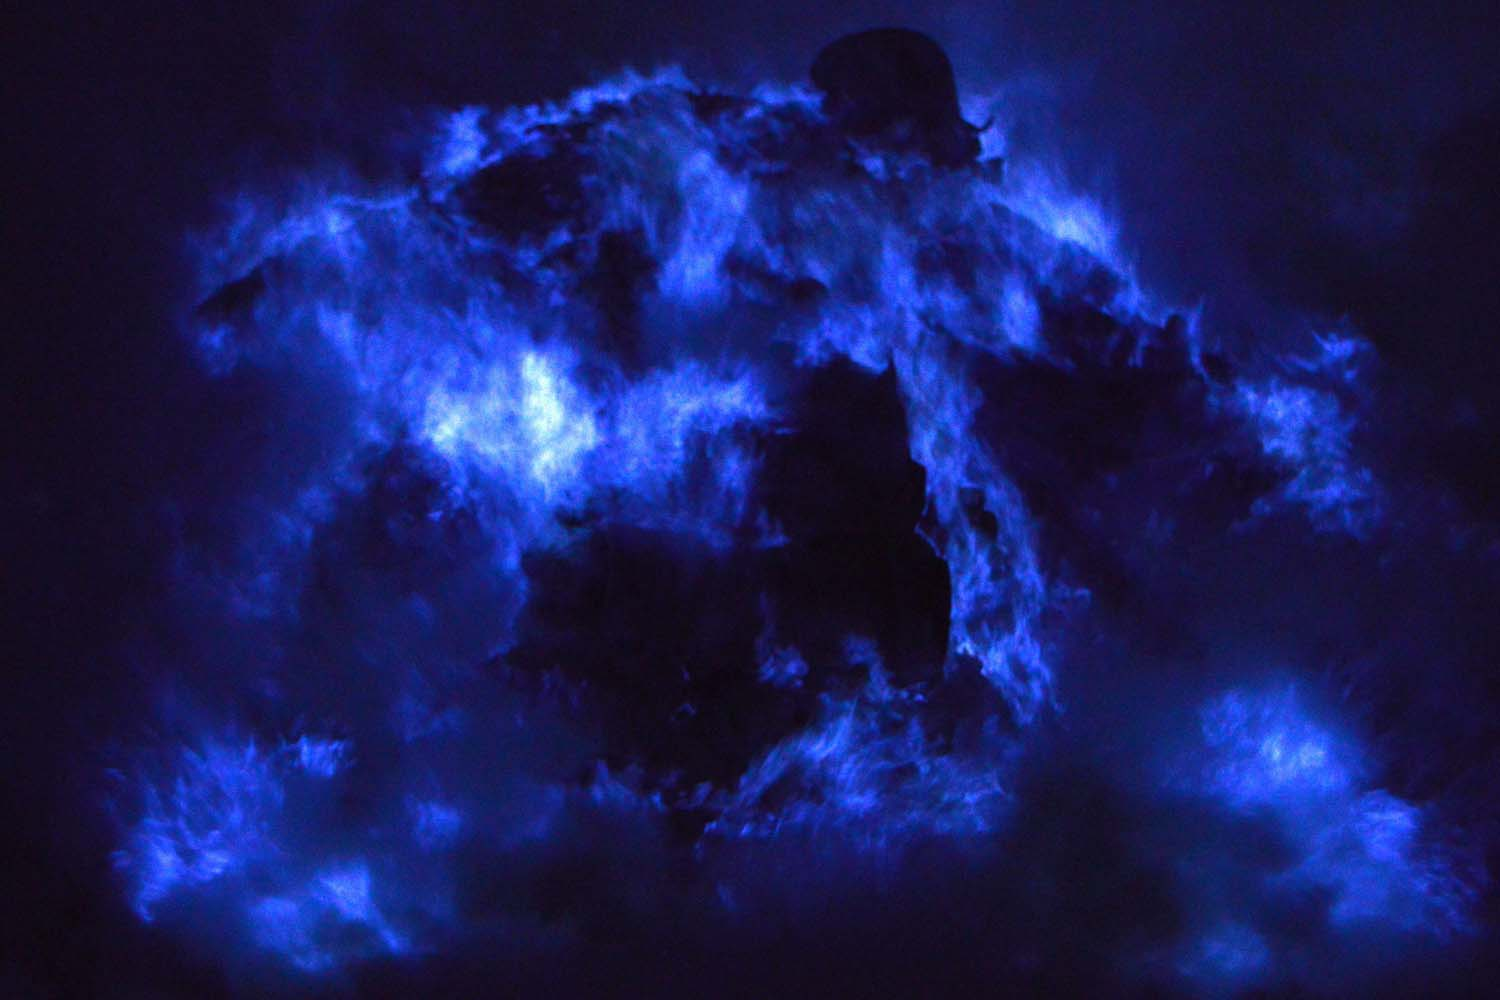 Mar. 22, 2014. The blue flame of burning sulfur at the crater of the Kawah Ijen volcano in Banyuwangi regency, East Java province. The natural phenomenon which can be seen at night is caused by sulfuric gases from the volcano which ignite into blue flames when they come into contact with the air.